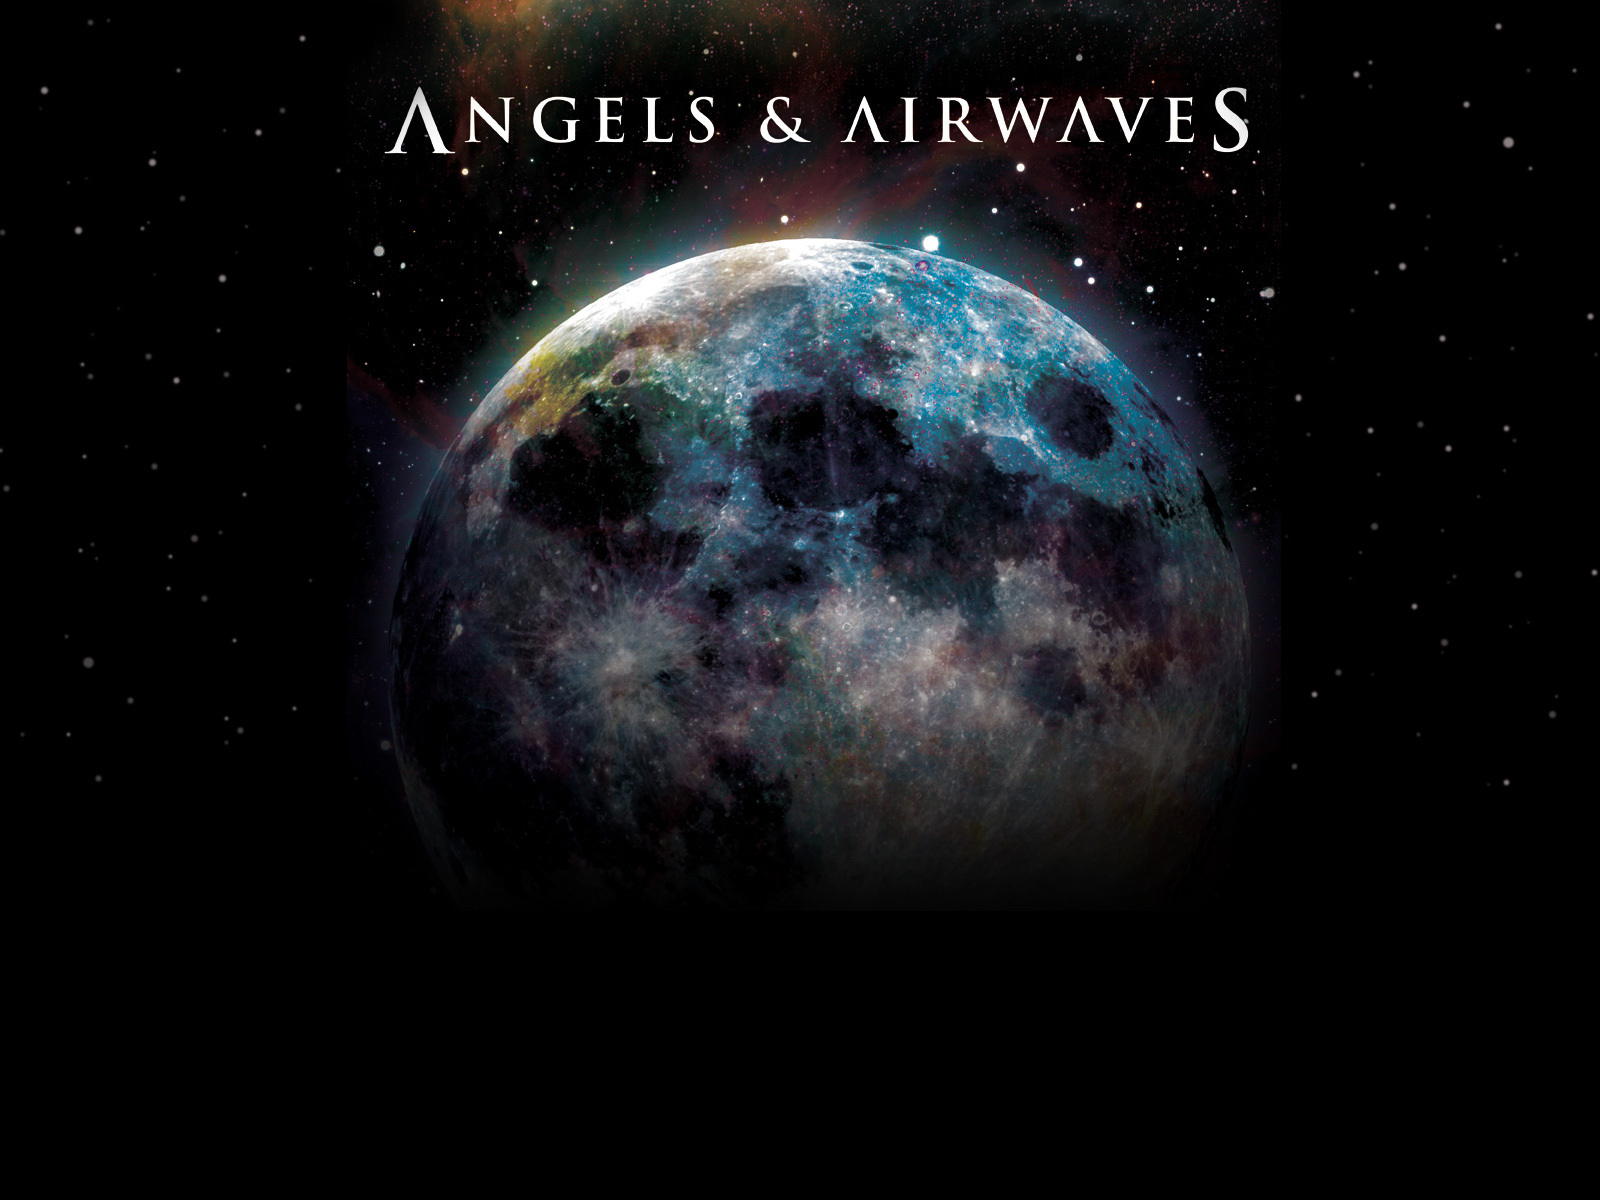 AVA Moon   Angels and Airwaves Wallpaper 1552887 1600x1200